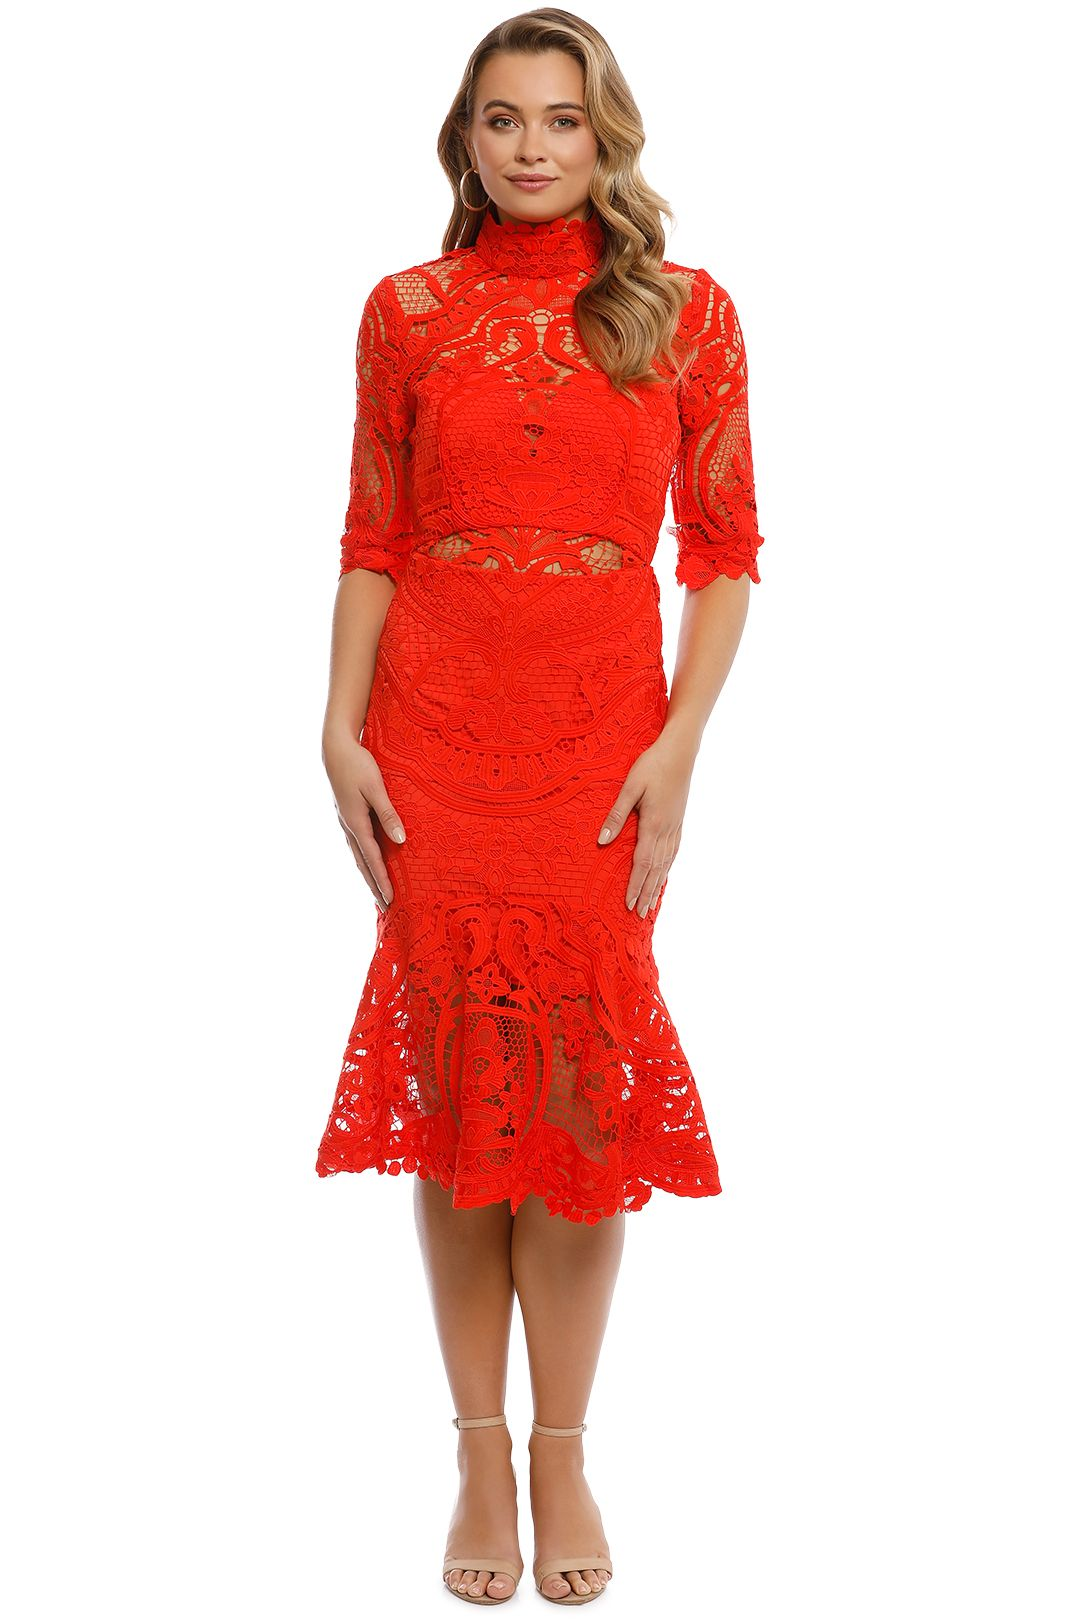 Thurley - Eternity Dress - Madarin - Front